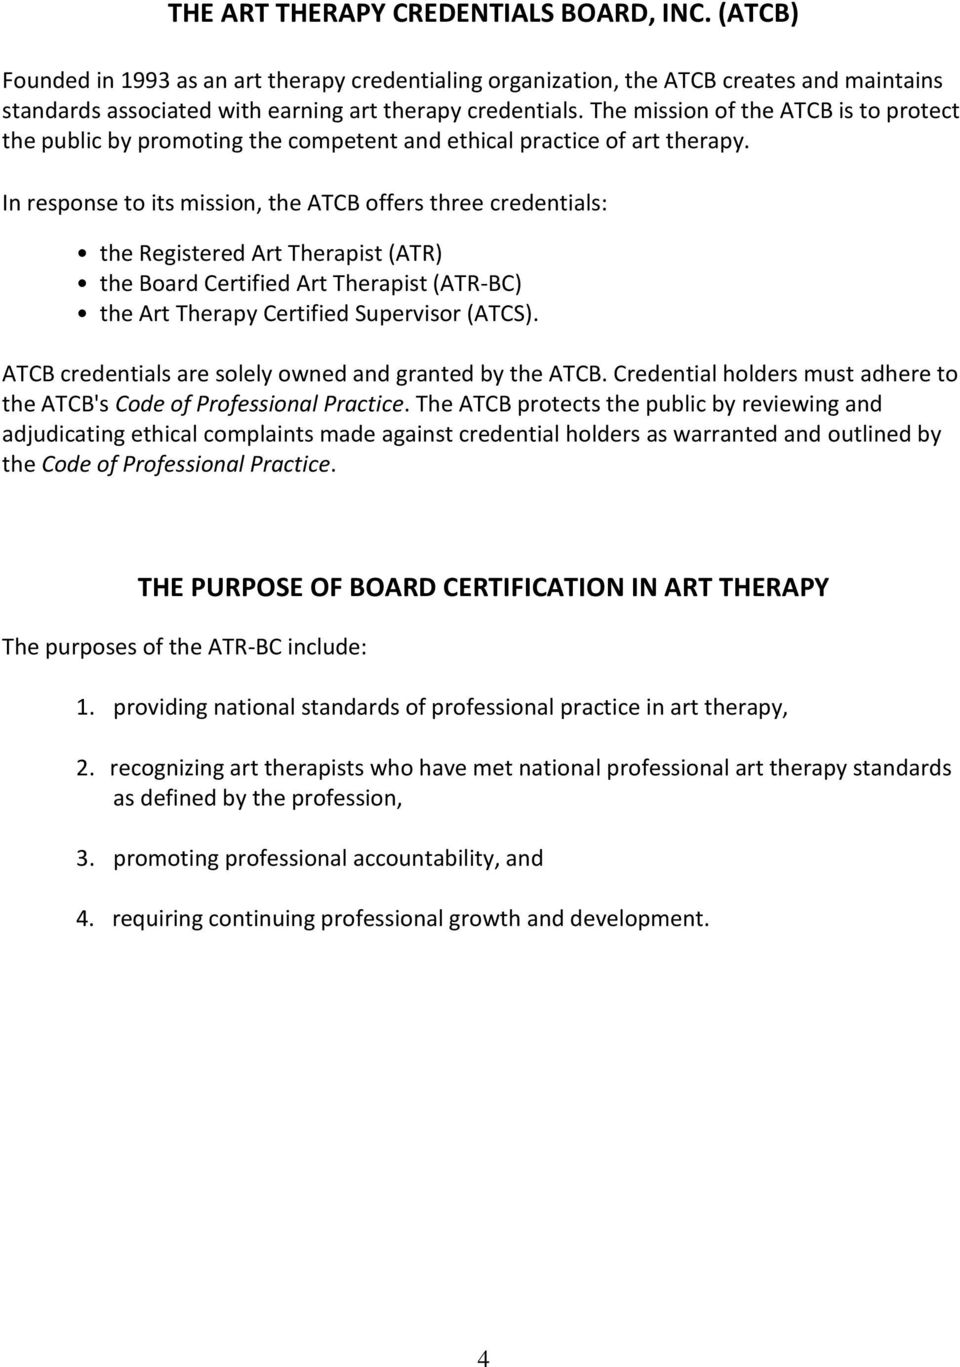 In response to its mission, the ATCB offers three credentials: the Registered Art Therapist (ATR) the Board Certified Art Therapist (ATR-BC) the Art Therapy Certified Supervisor (ATCS).